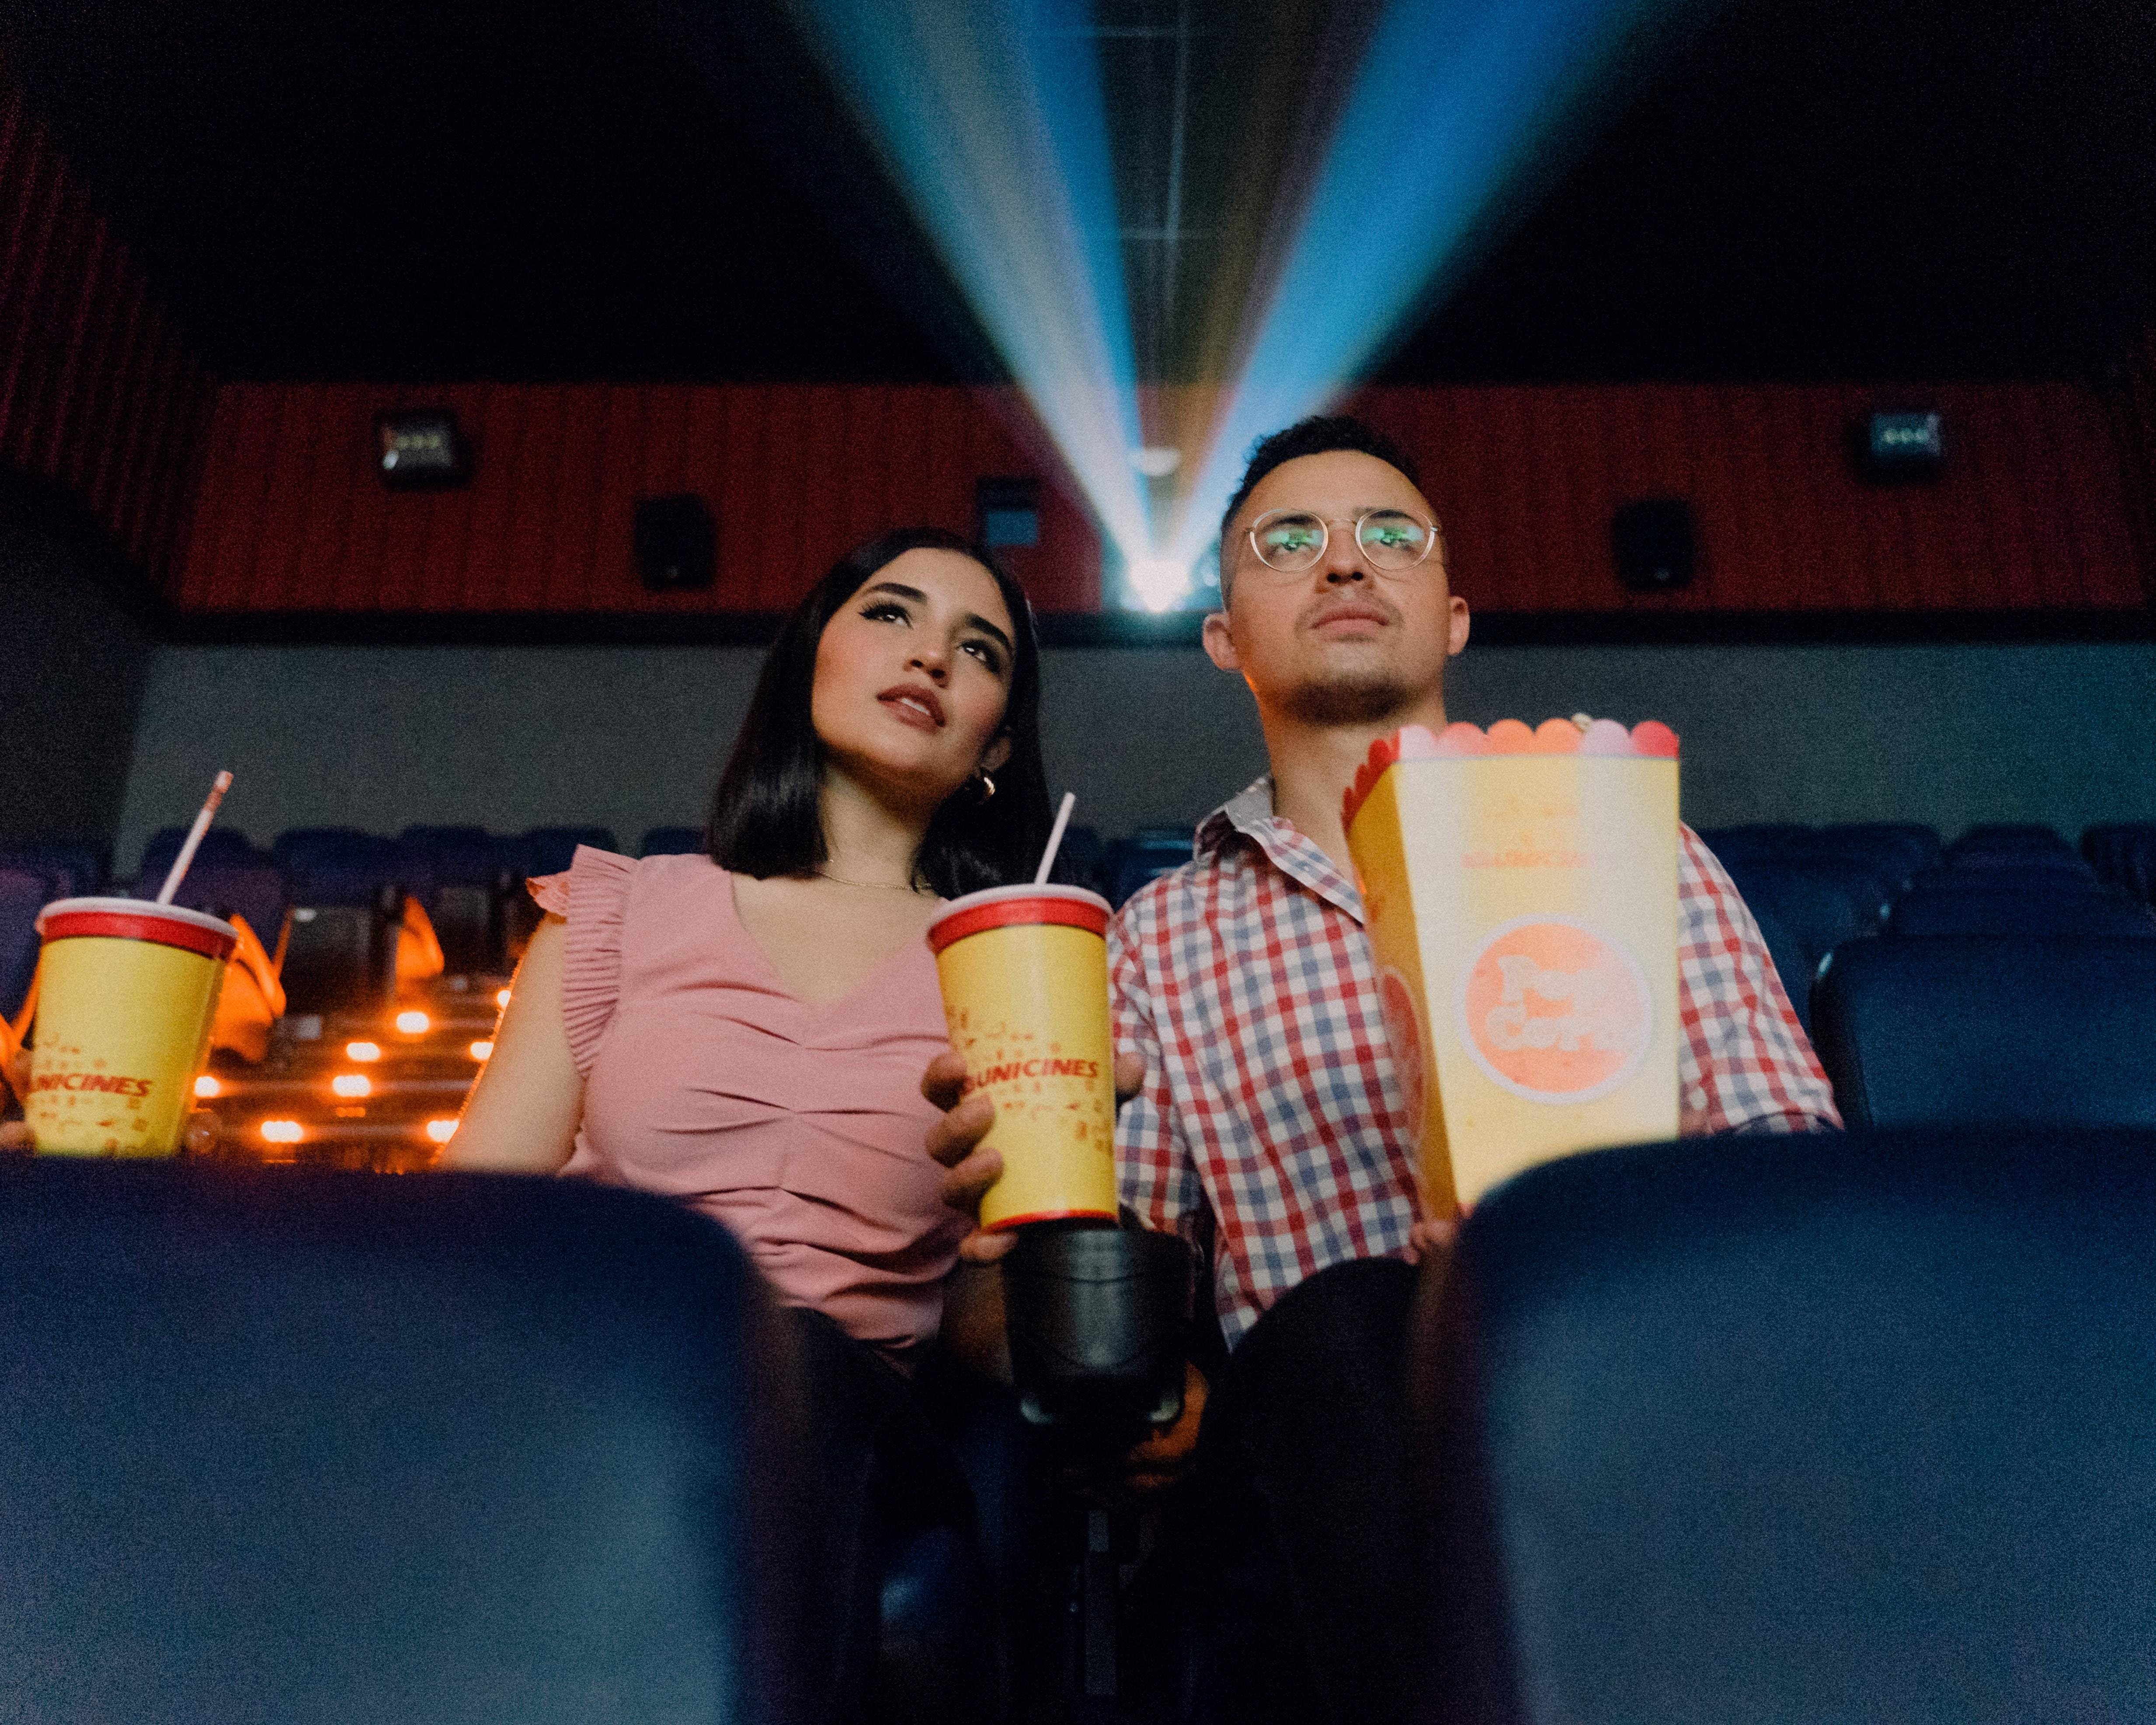 this couple are sitting in a cinema watching a film